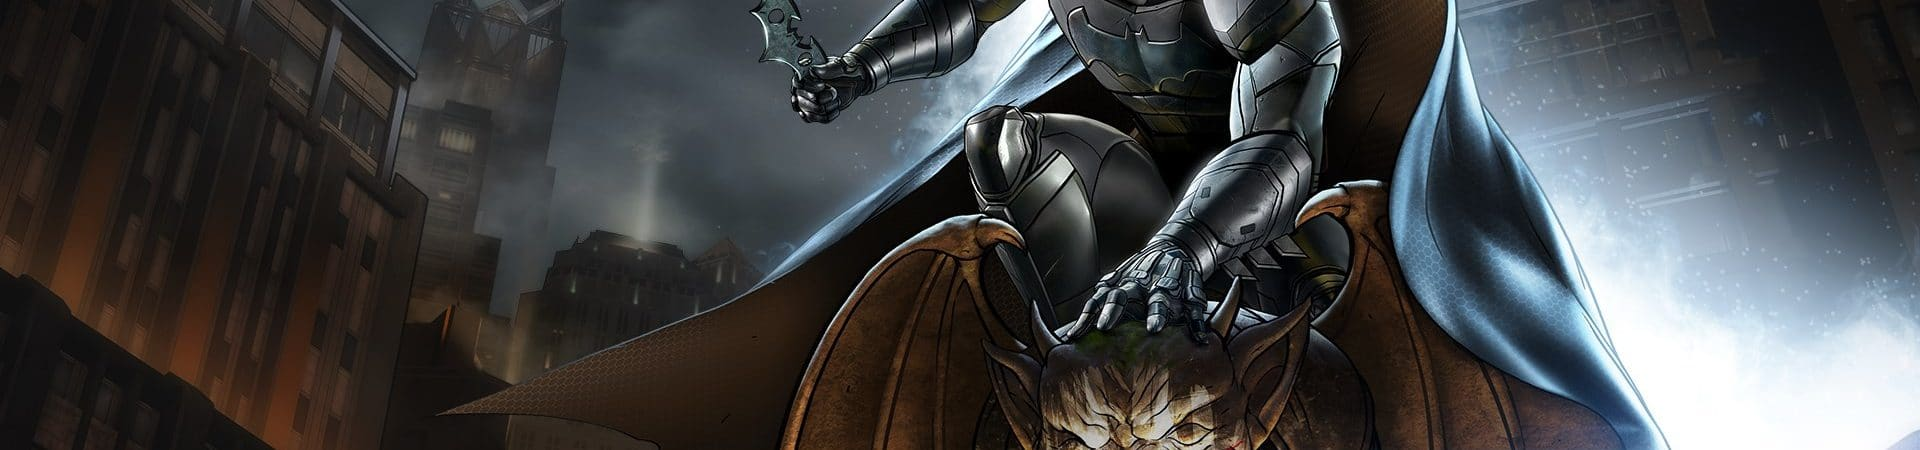 Juego de Batman The Enemy Within - The Telltale Series